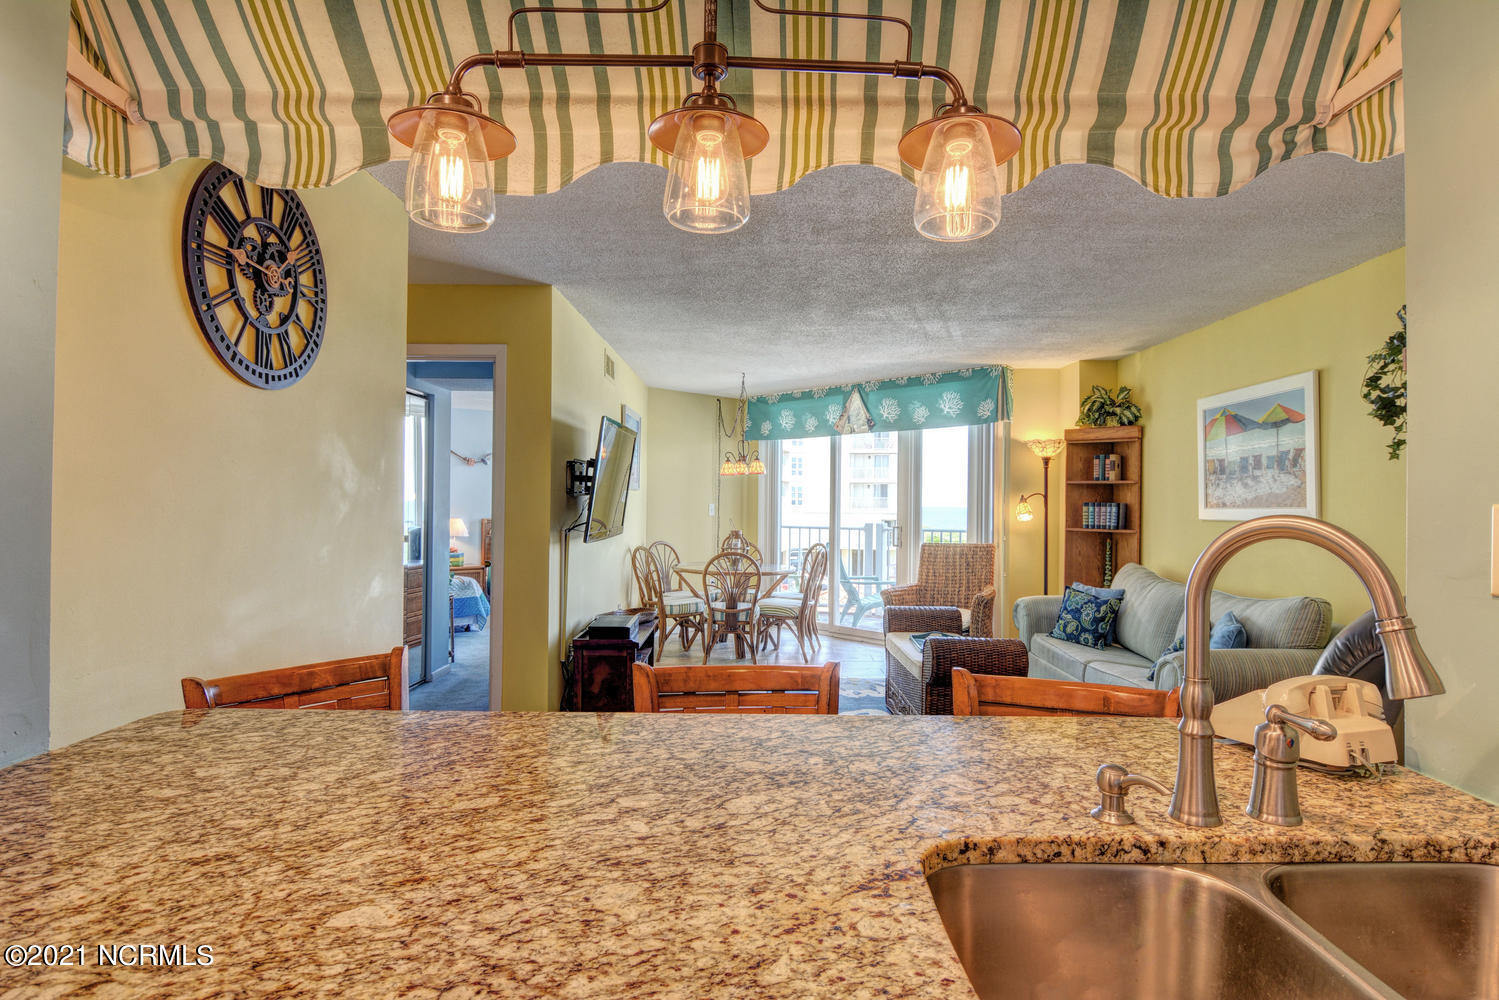 2000 New River Inlet Road, North Topsail Beach, North Carolina 28460, 2 Bedrooms Bedrooms, 4 Rooms Rooms,2 BathroomsBathrooms,Condominium,For sale,New River Inlet,100261925